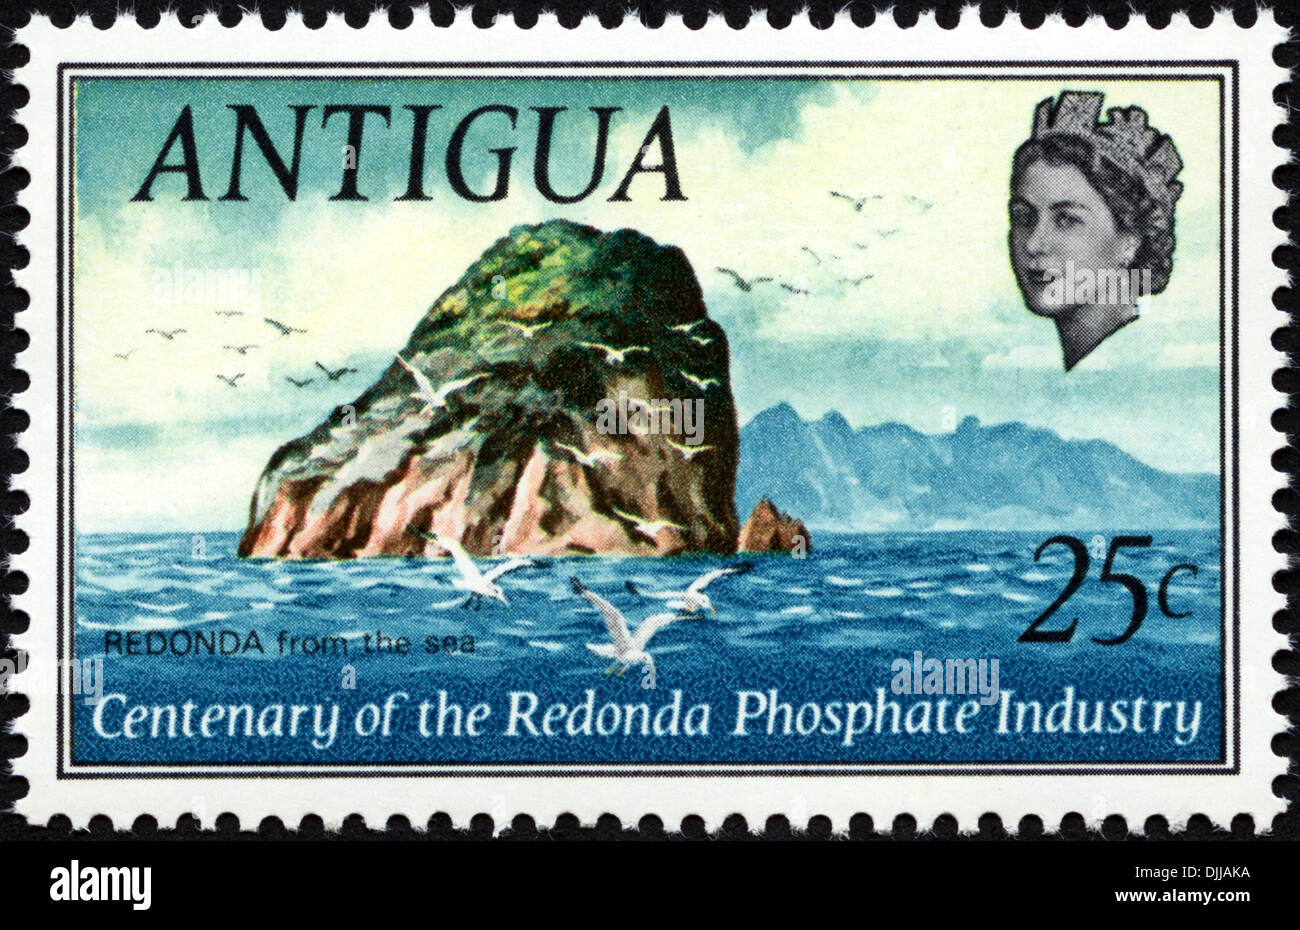 postage stamp Antigua 25c featuring Centenary of the Redonda Phosphate Industry issued 1969 - Stock Image